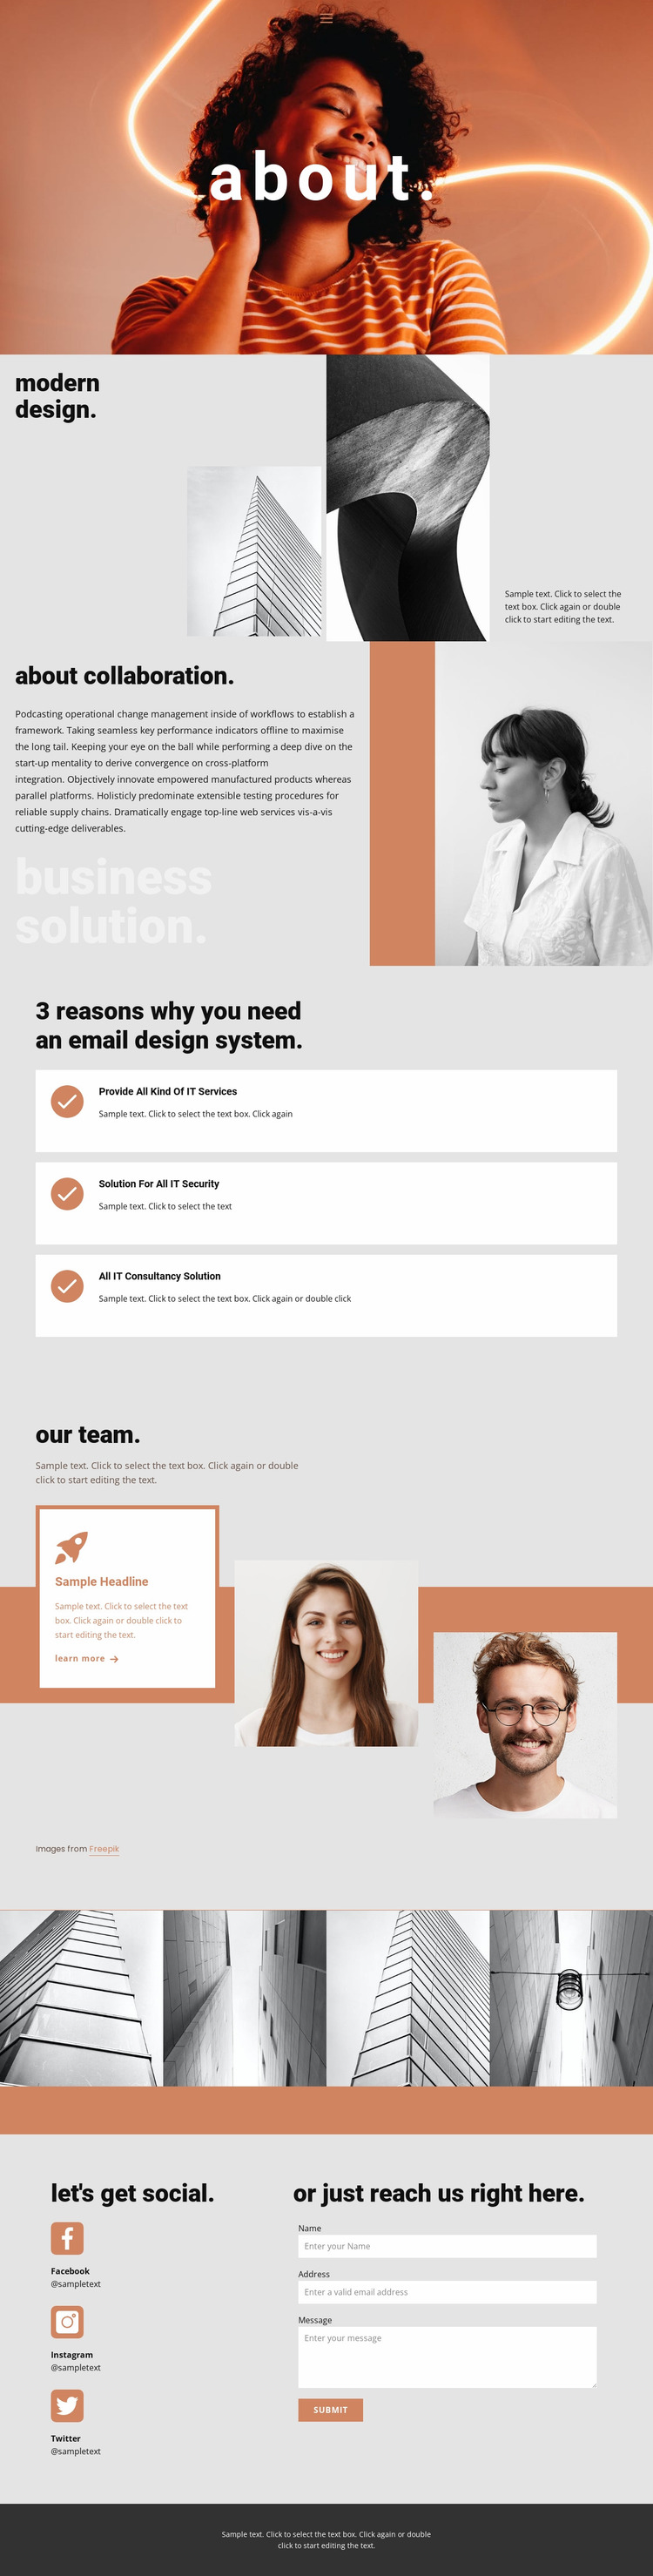 Union of Artists and Architects Website Mockup